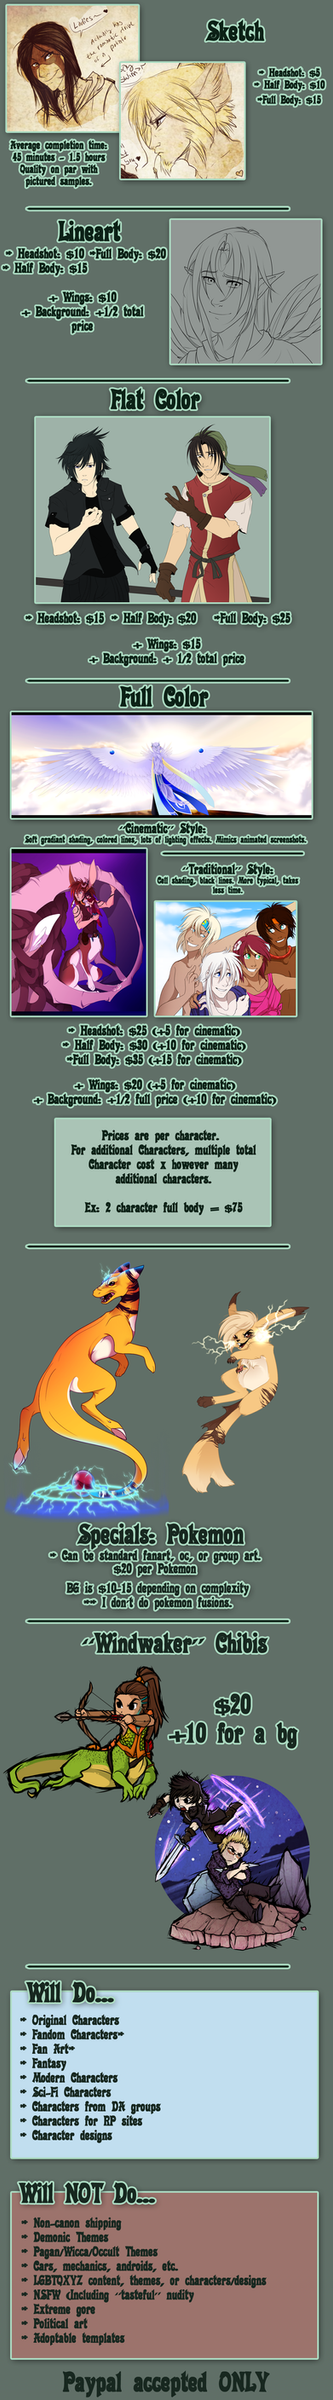 Commission Prices - 2018 by Tigryph